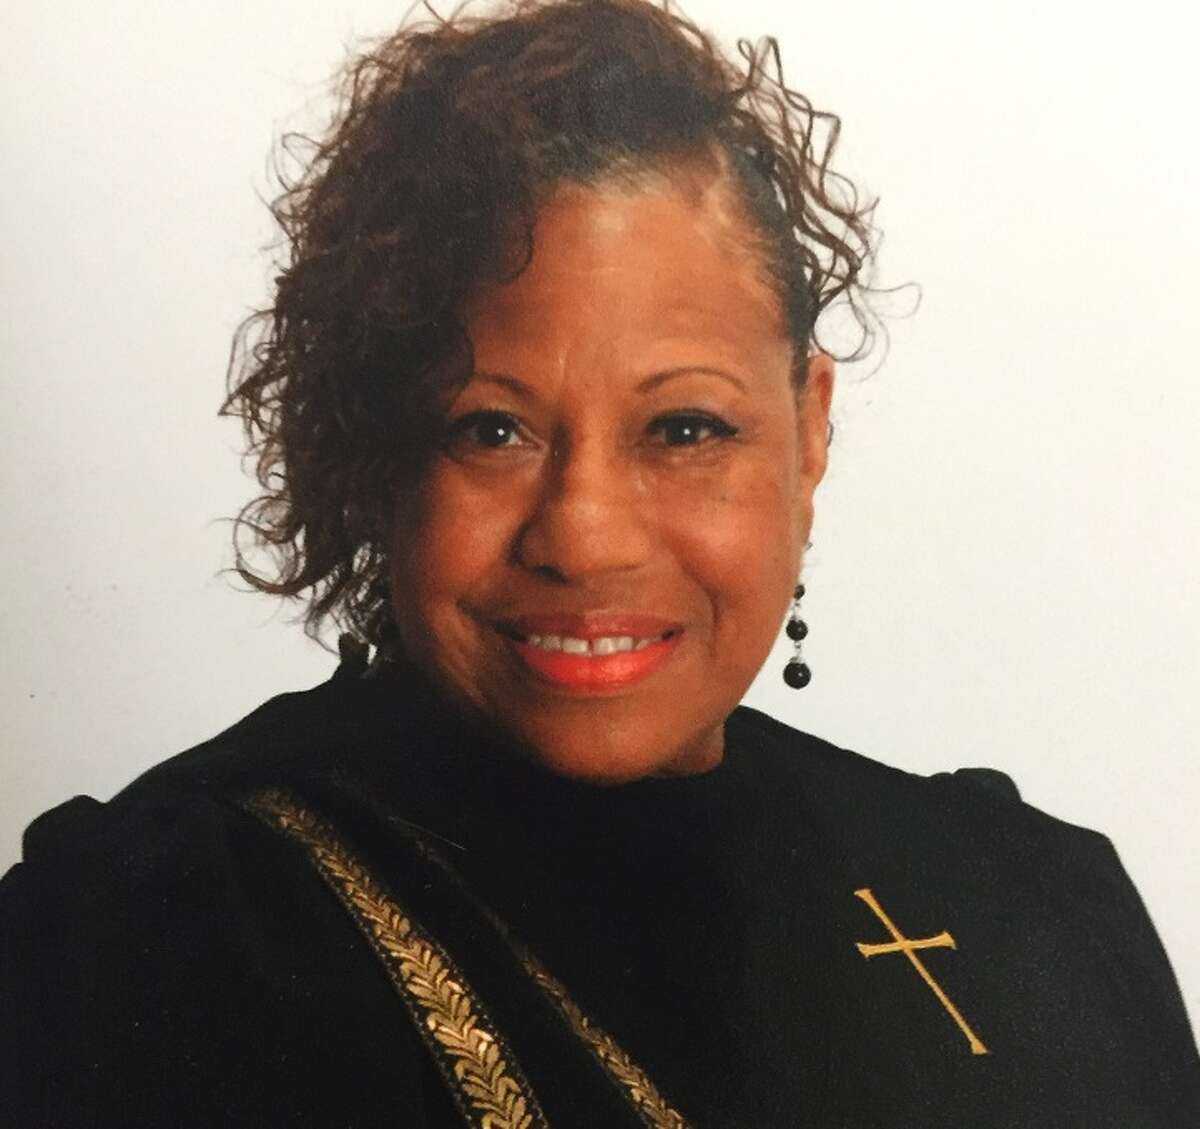 Linda Dukes, a minister at Bethel Baptist Church in Troy, is remembered for her smile, love of God, being a fashionista.